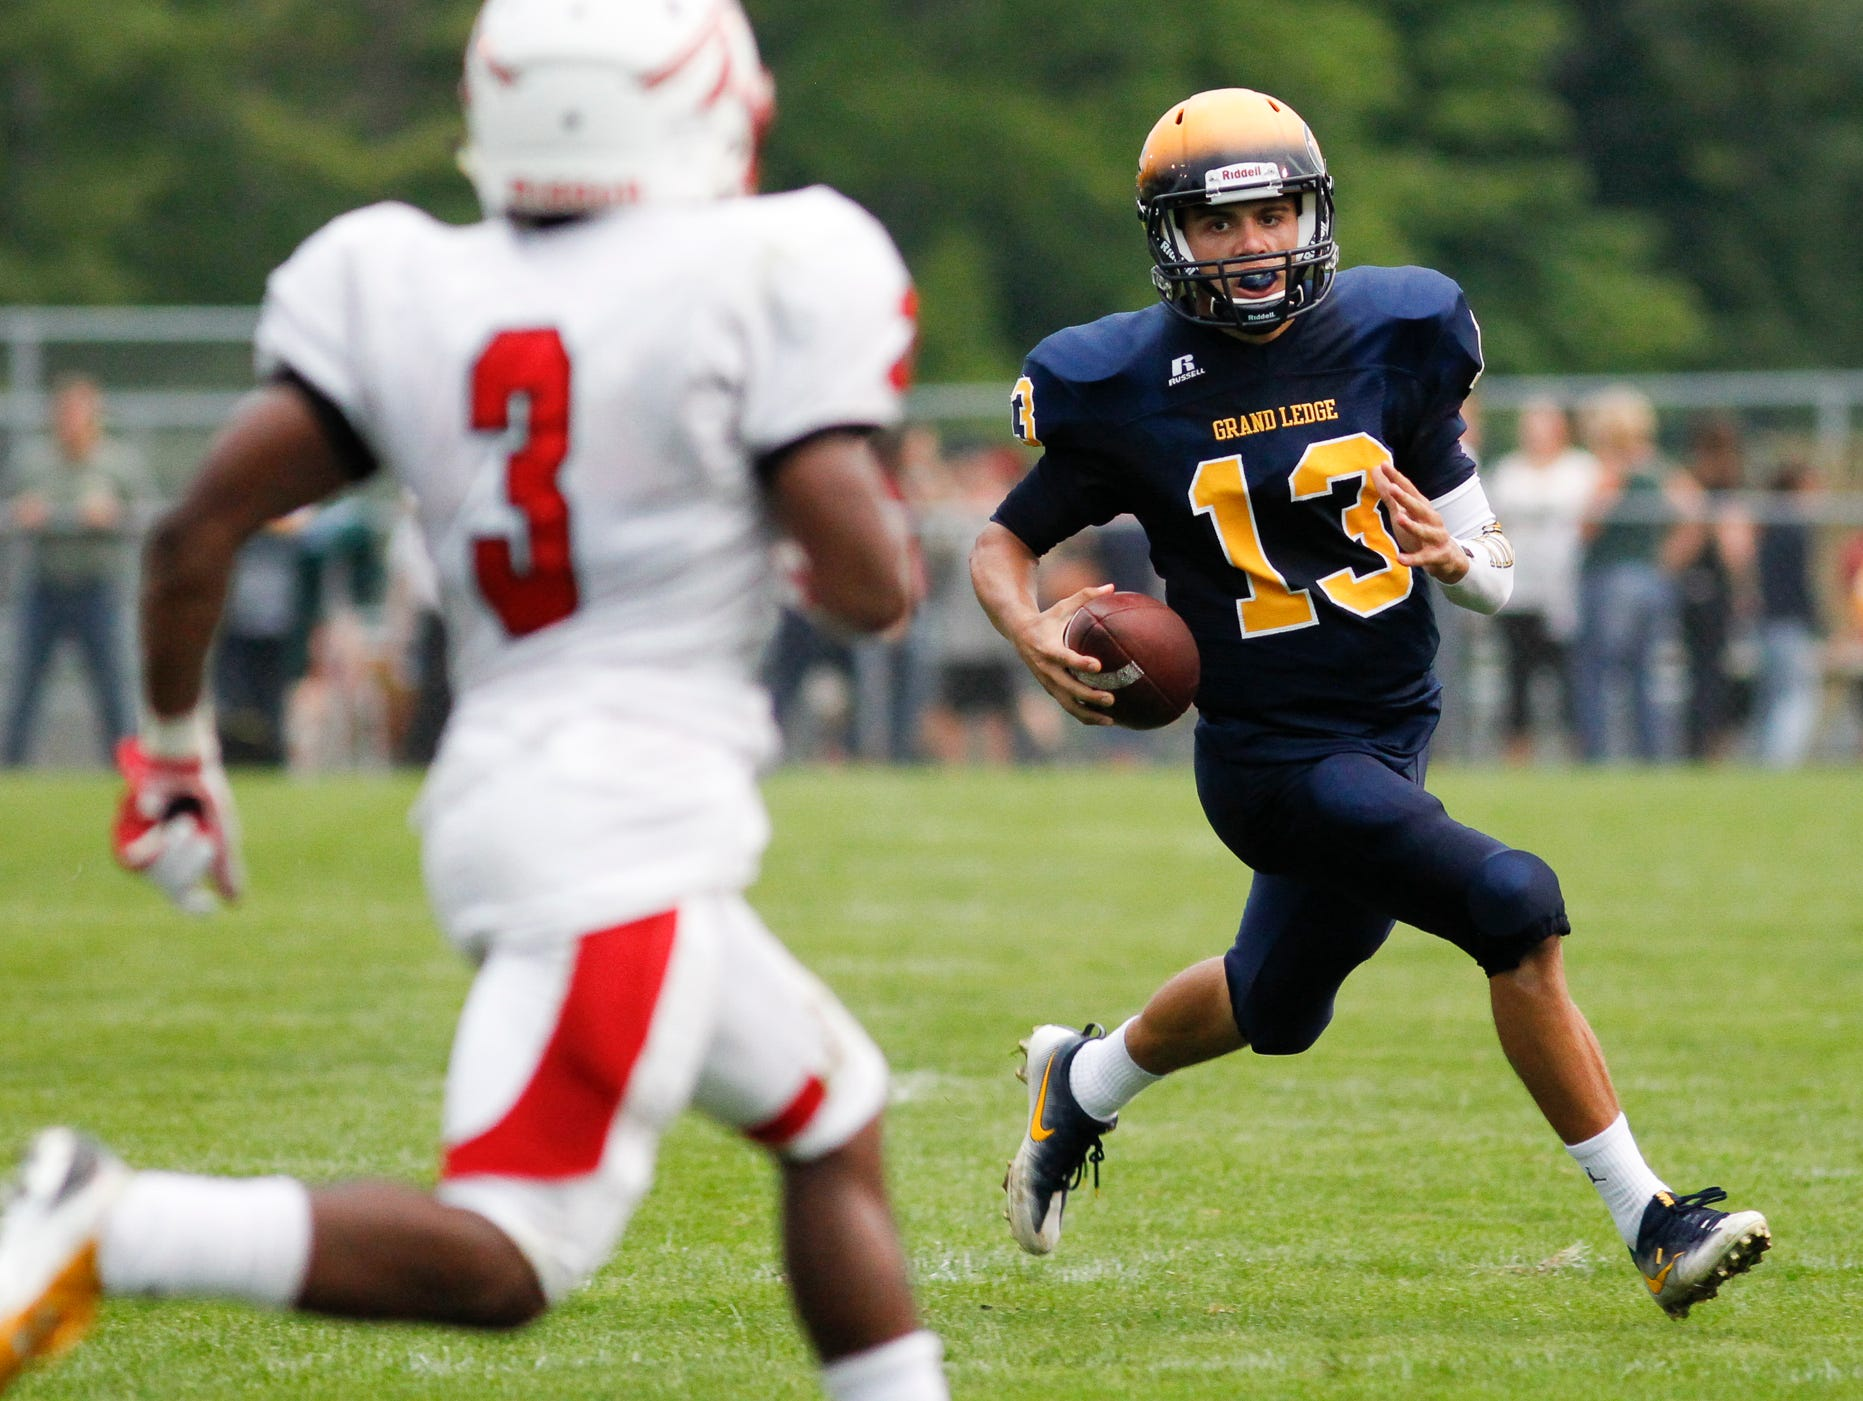 Grand Ledge QB Nolan Bird runs against Sexton's Cody Blaneburg September 9, 2016, at Grand Ledge. Bird led his Comets to a 40-19 win over Sexton. [MATTHEW DAE SMITH | for the Lansing State Journal]